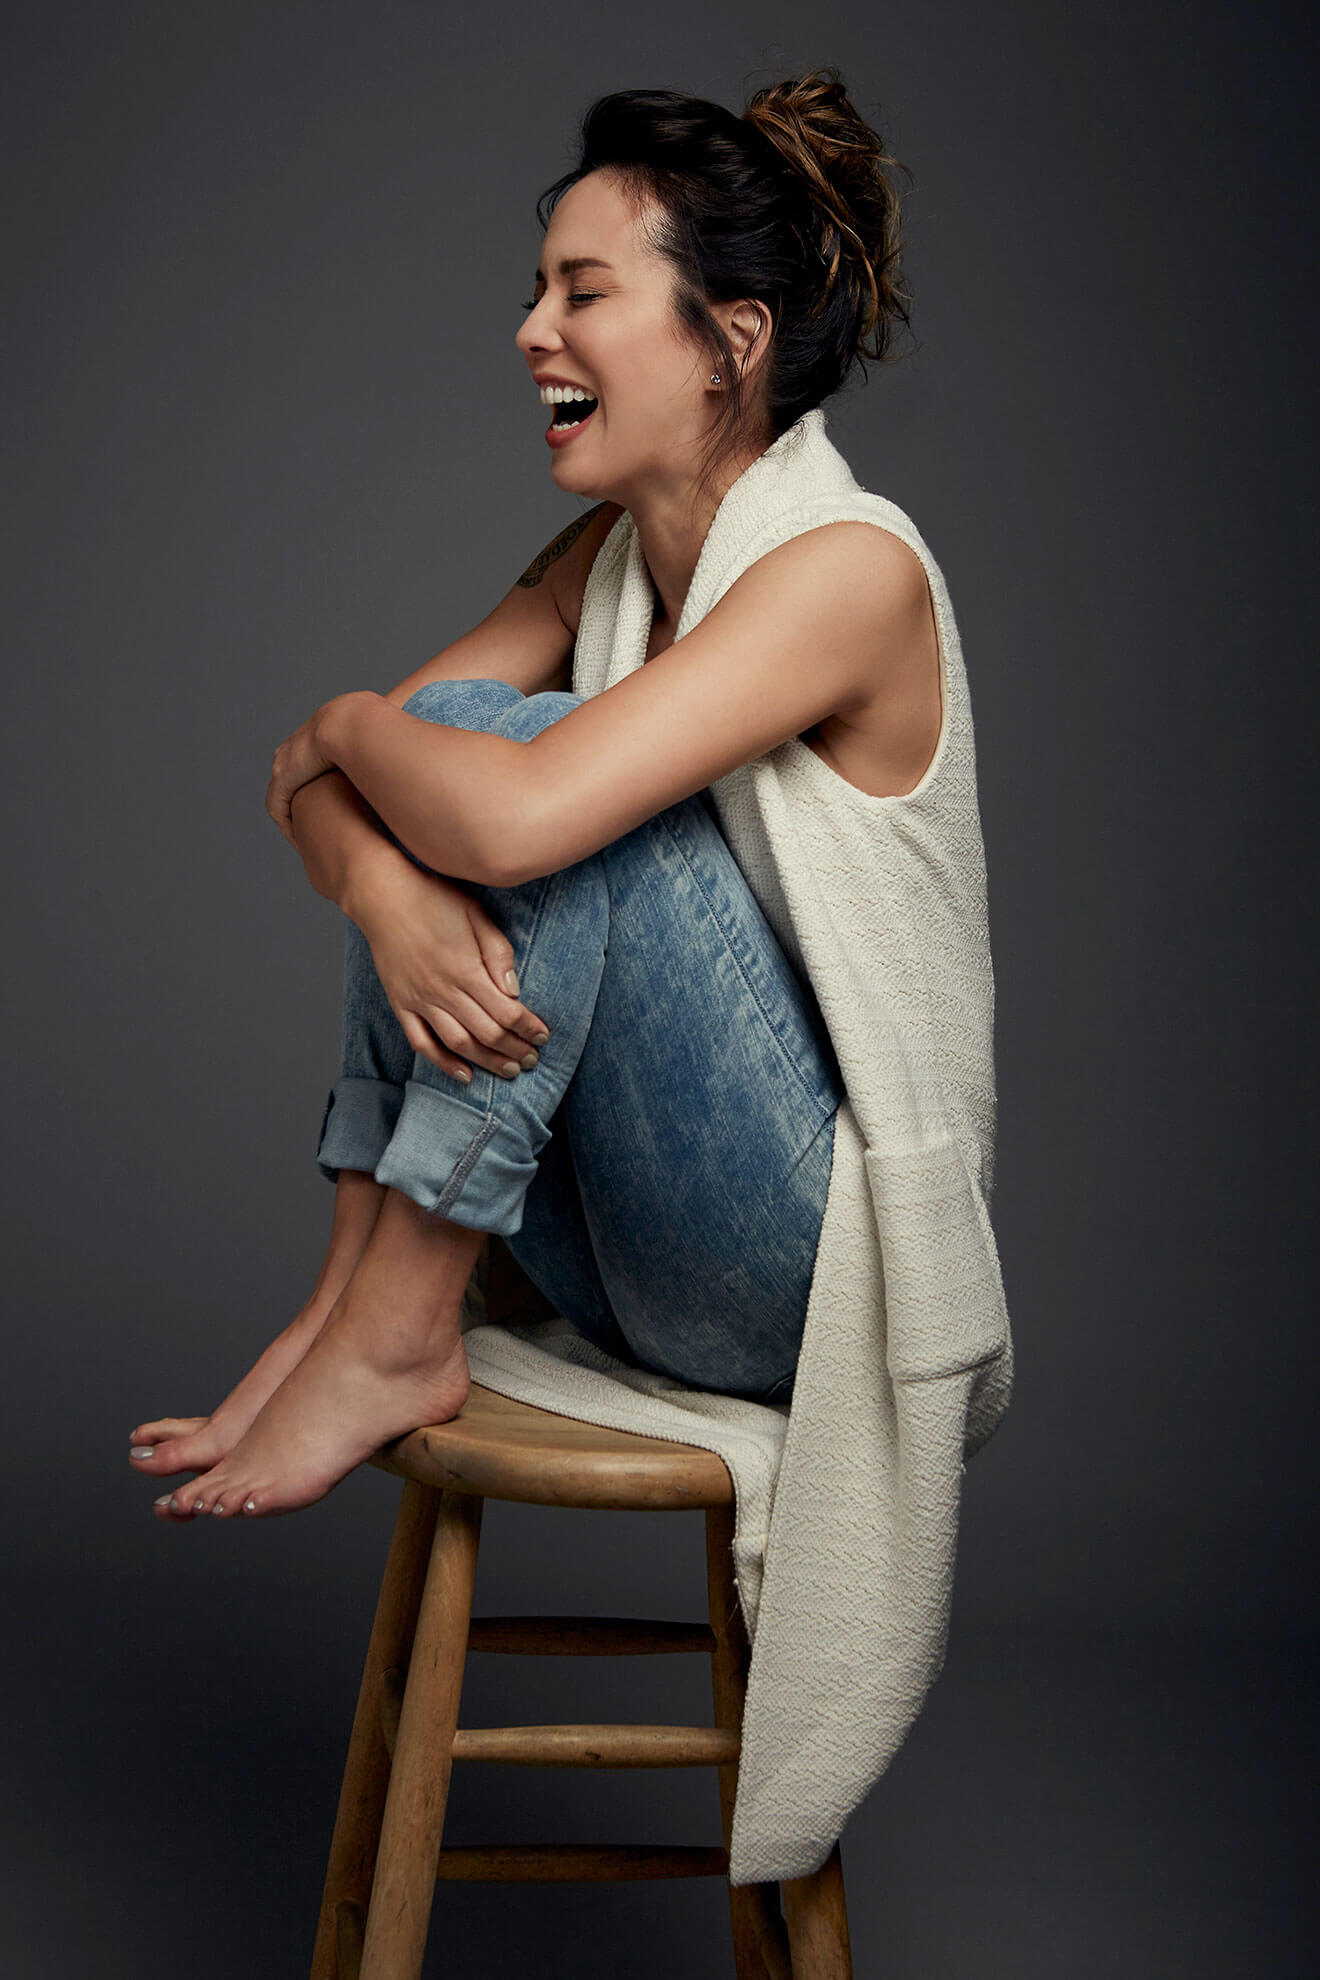 Chillin' with Lexa Doig, casual, indian style on stool laughing